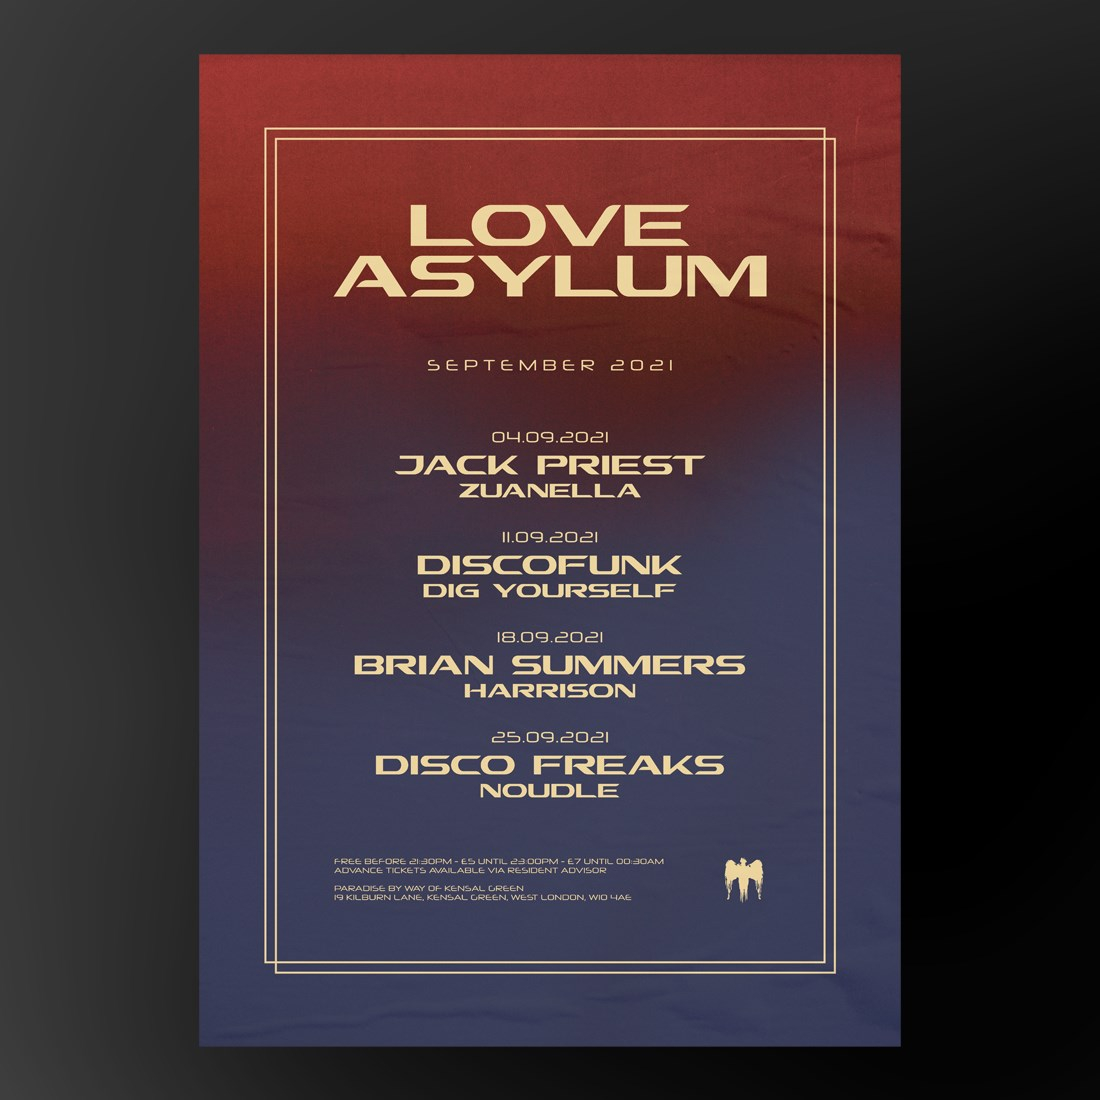 Love Asylum with Brian Summers - Flyer back